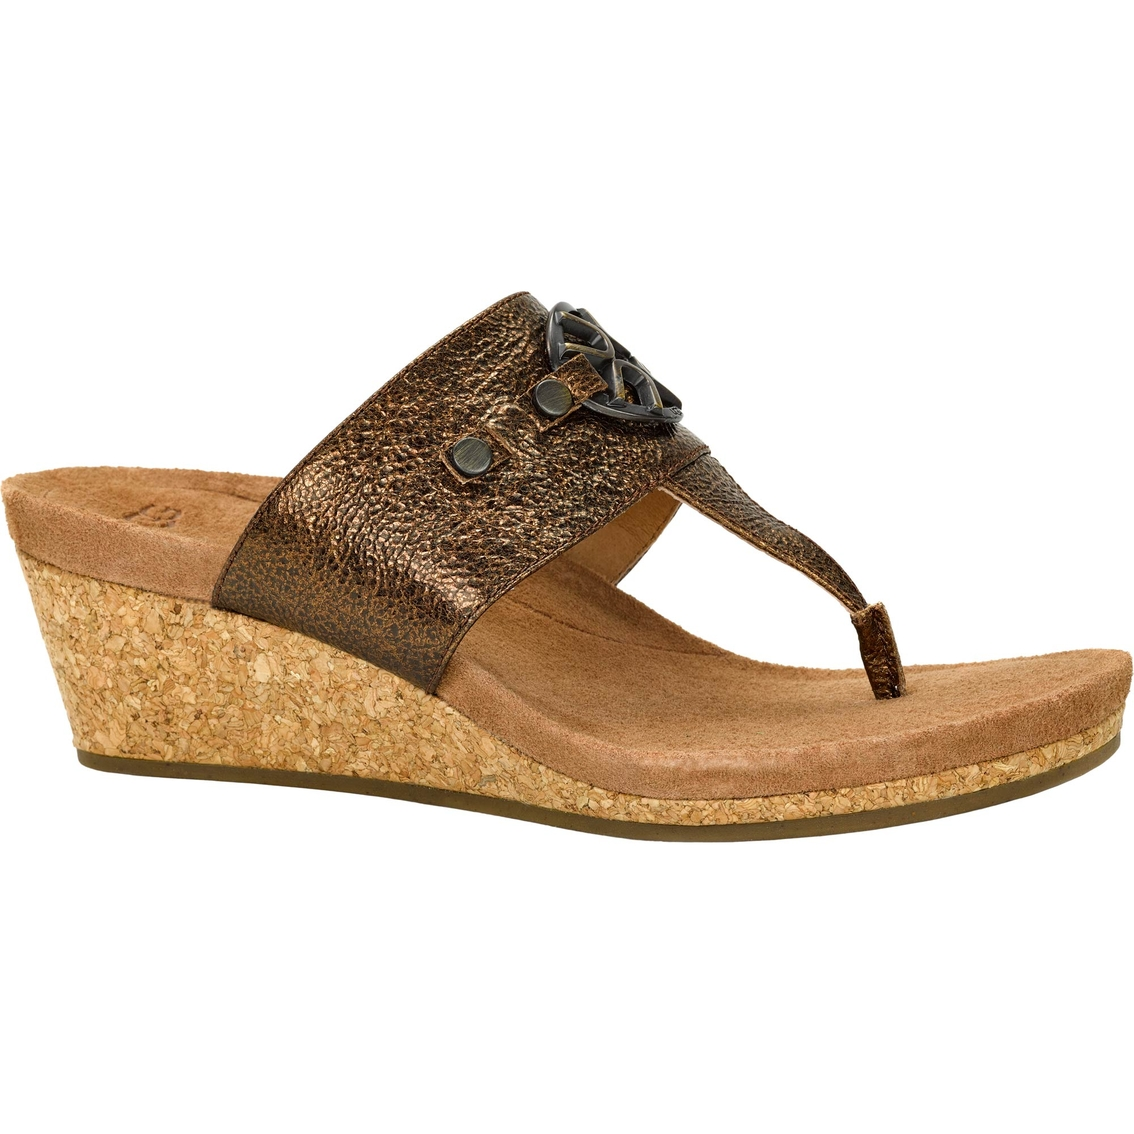 53fb8869736 Ugg Briella Cork Sandals | Wedge | Shoes | Shop The Exchange